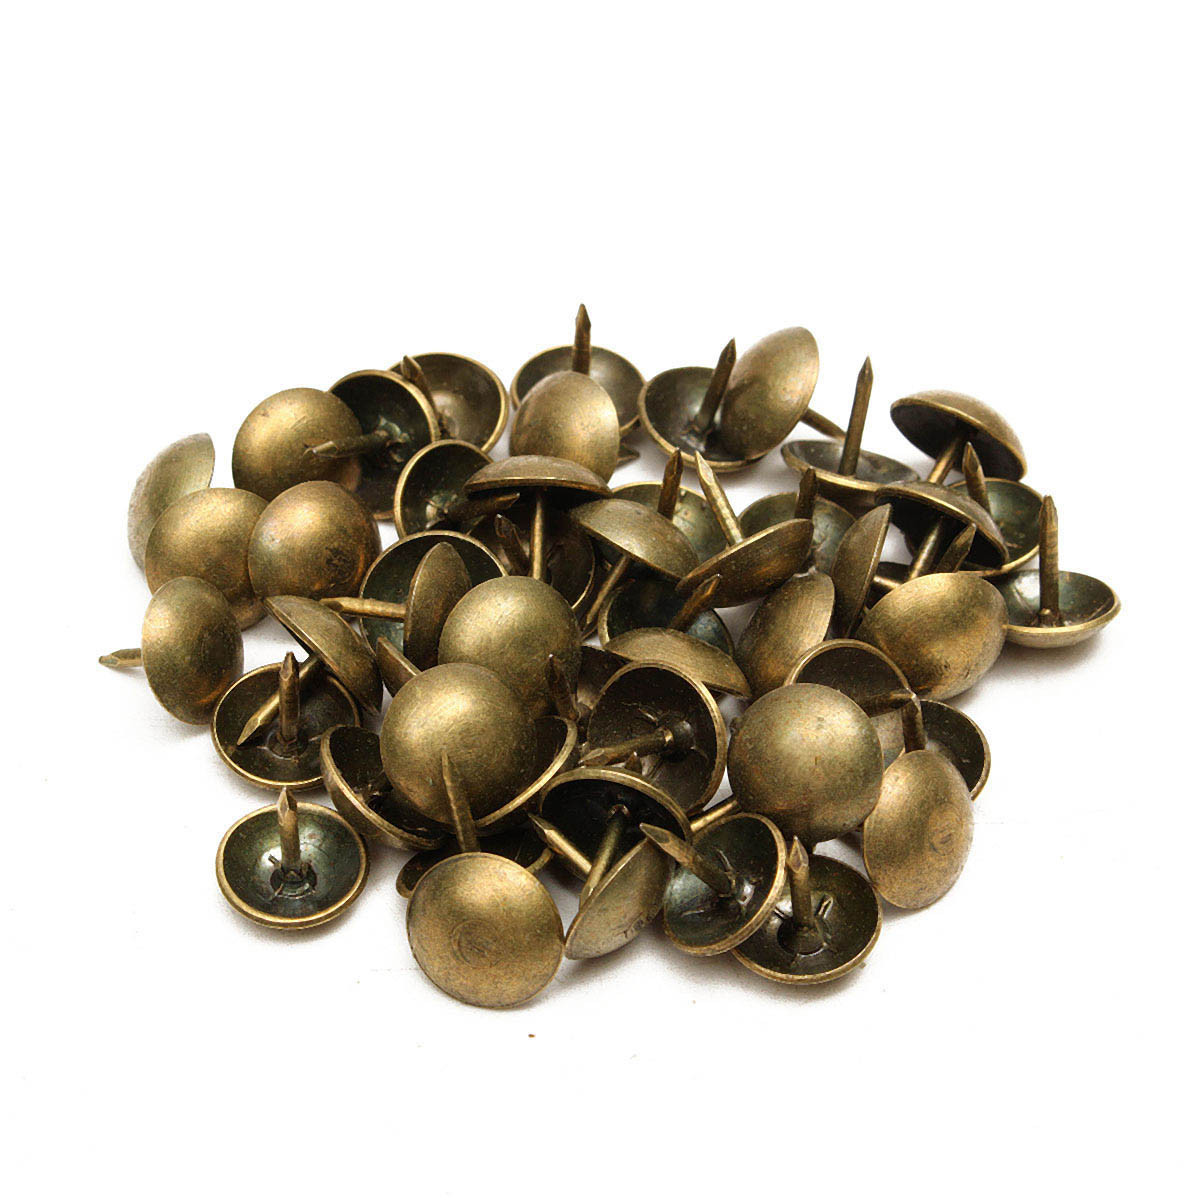 50 100pcs Antique Upholstery Tacks Brass Nails Furniture